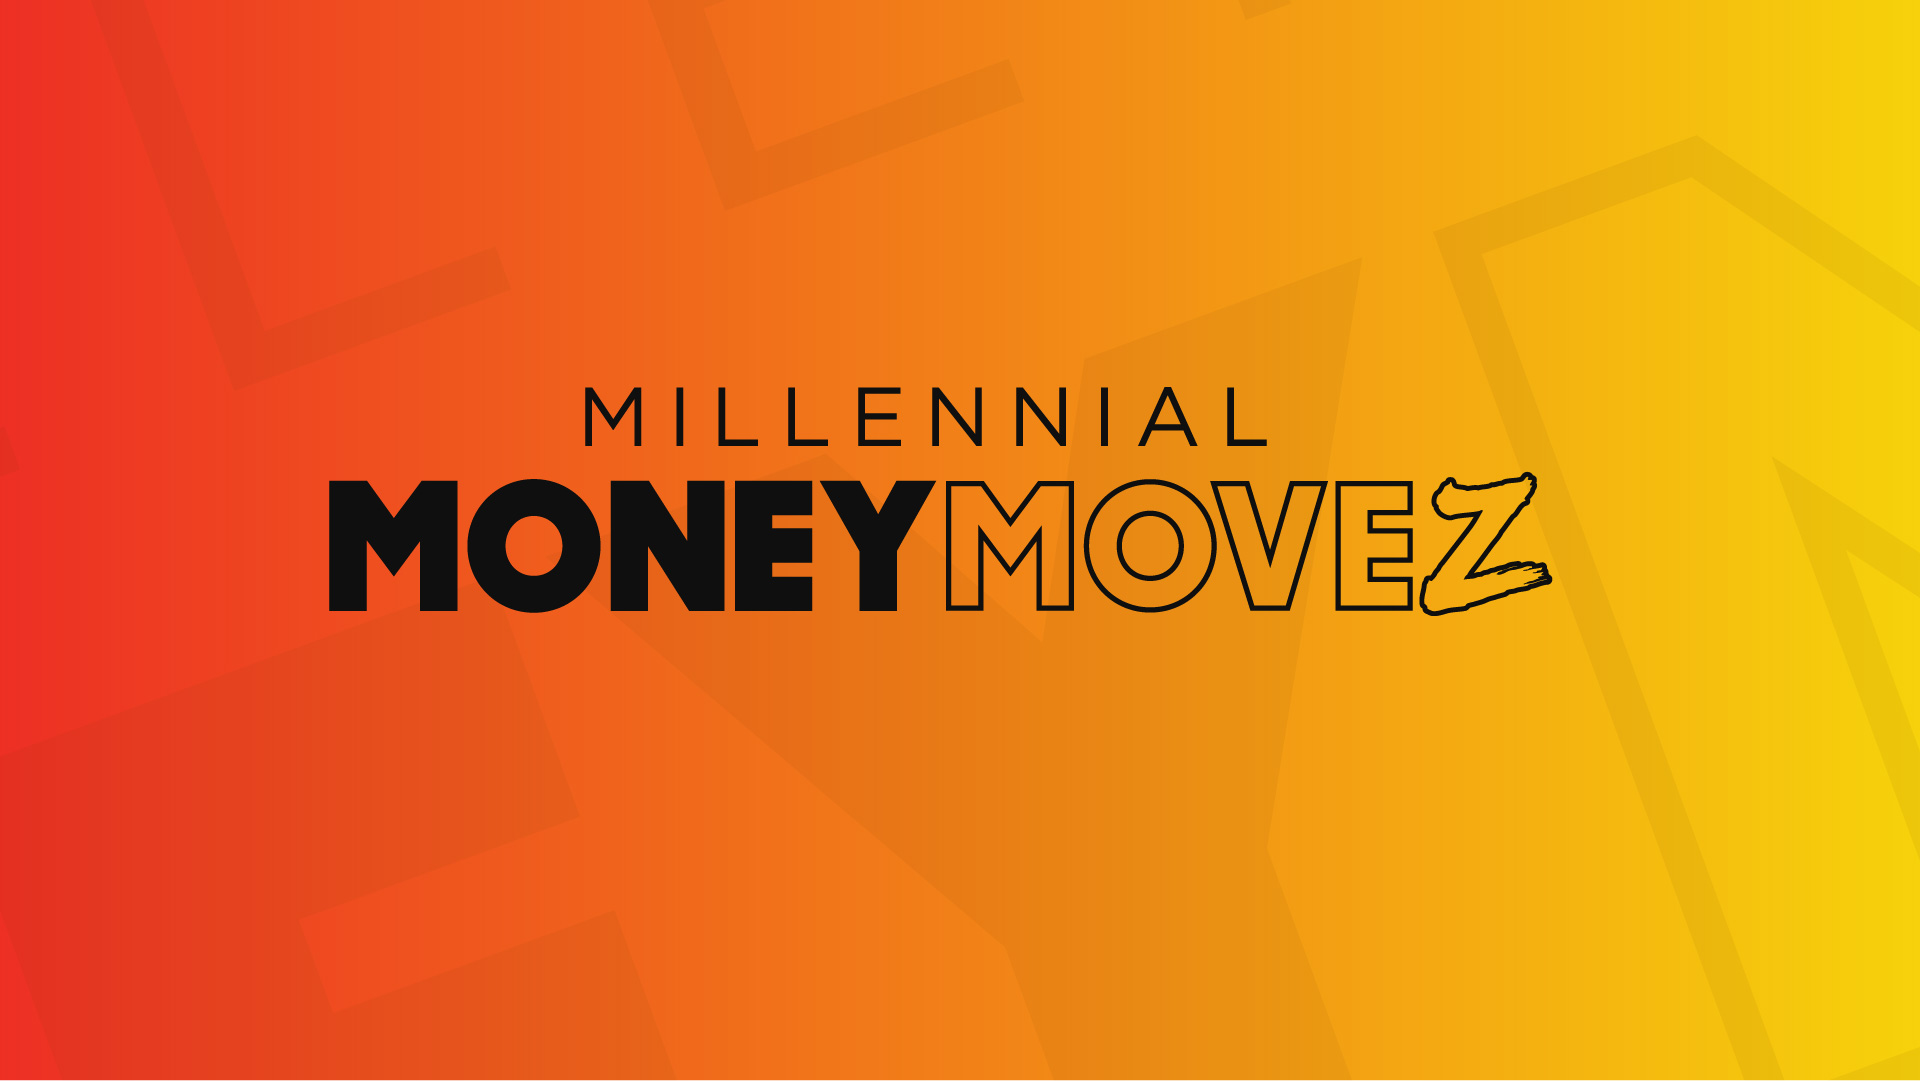 Millennial Money MoveZ